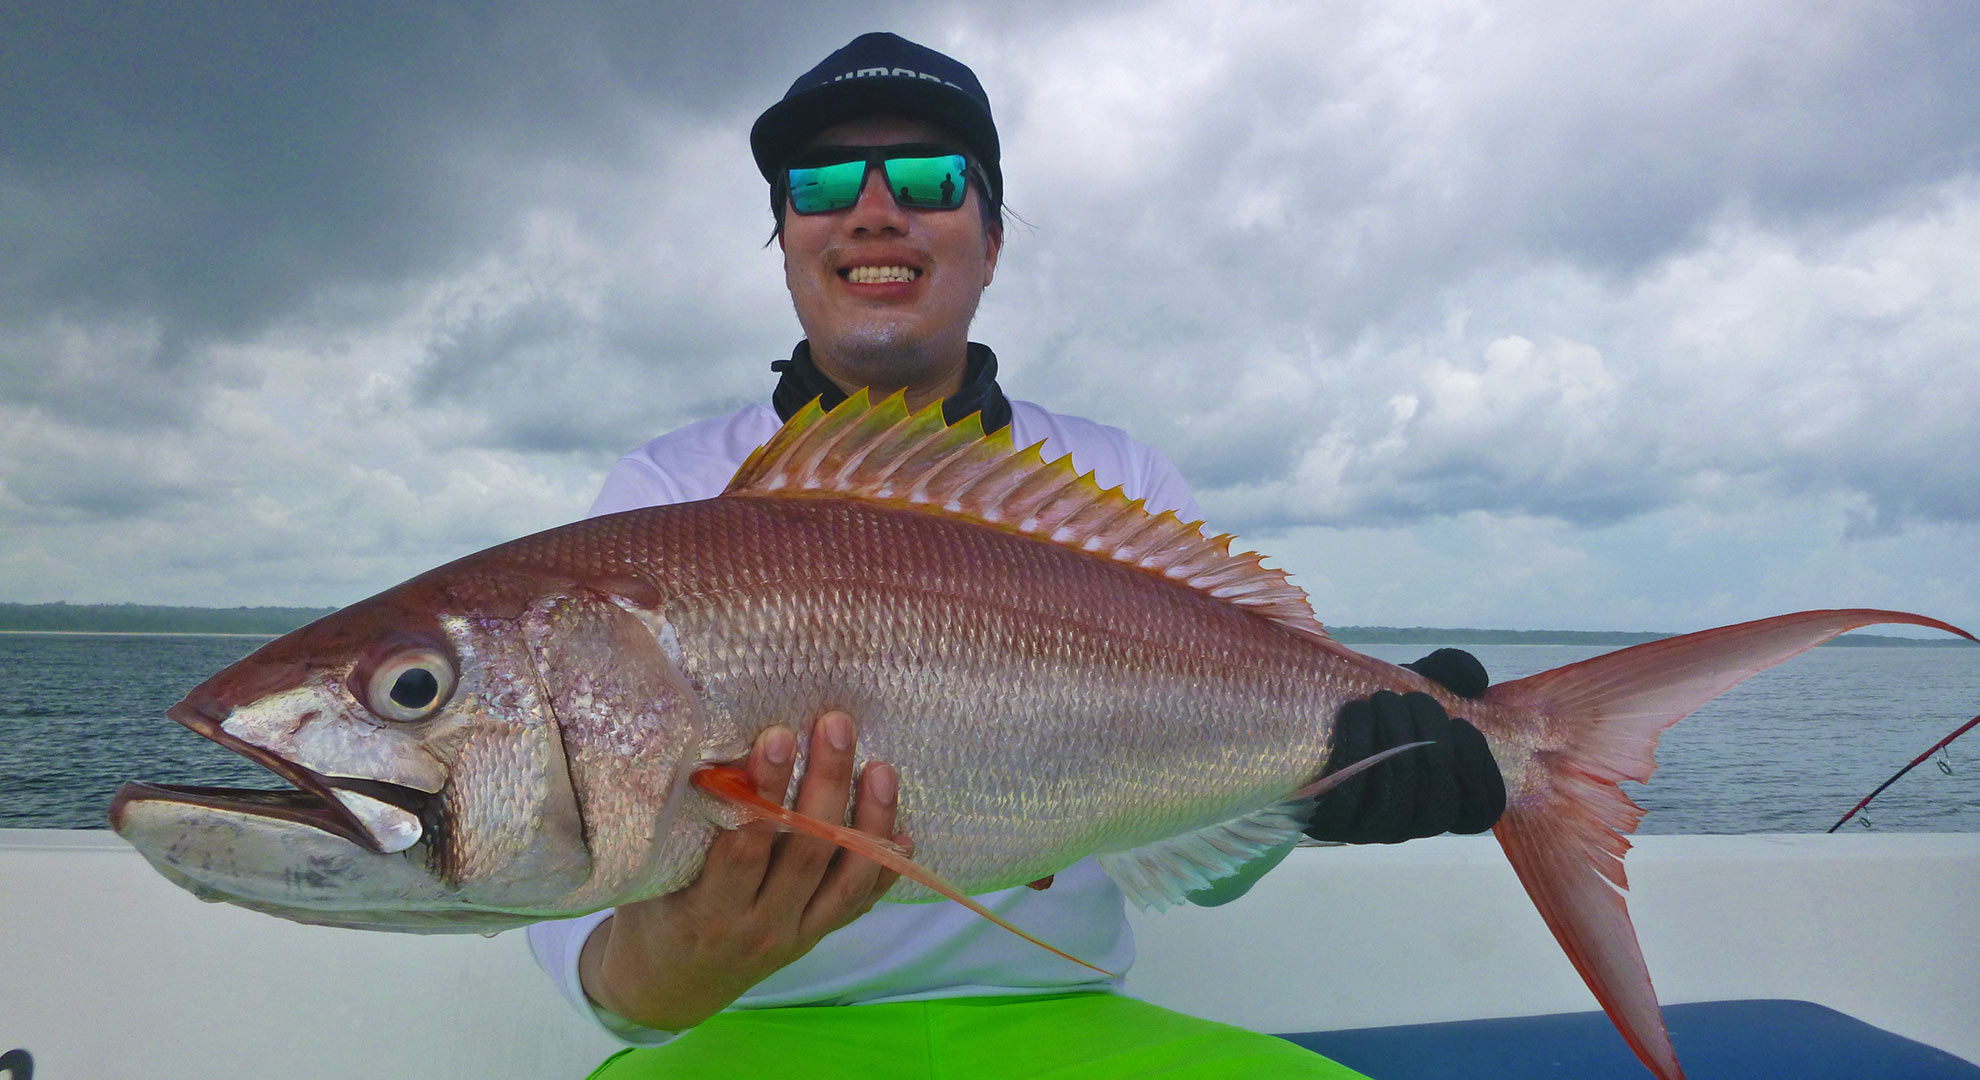 No.3_Rusty-jobfish_fishing_jgging_andaman_shimano-stella_gamefishingasia_boat_big-fish_gtpopping_boat-charter